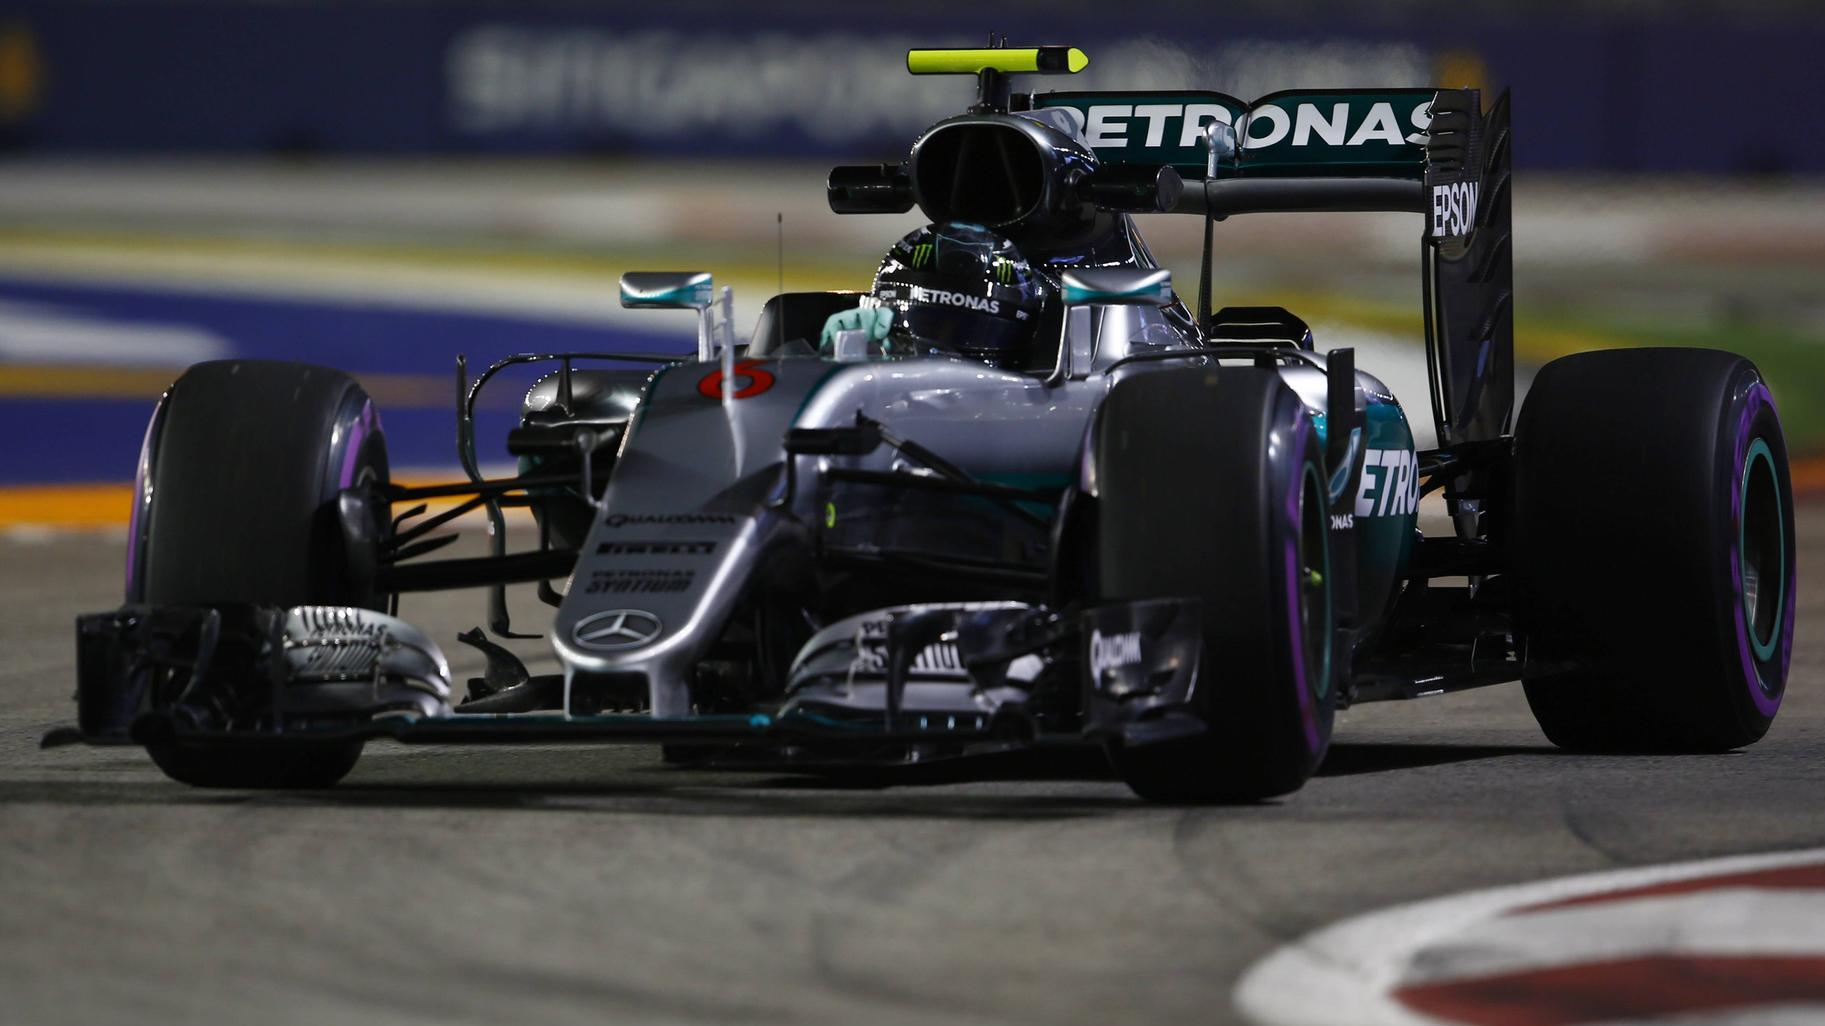 formel 1 singapur bestzeit f r rosberg im 2 training vettel schw chelt. Black Bedroom Furniture Sets. Home Design Ideas